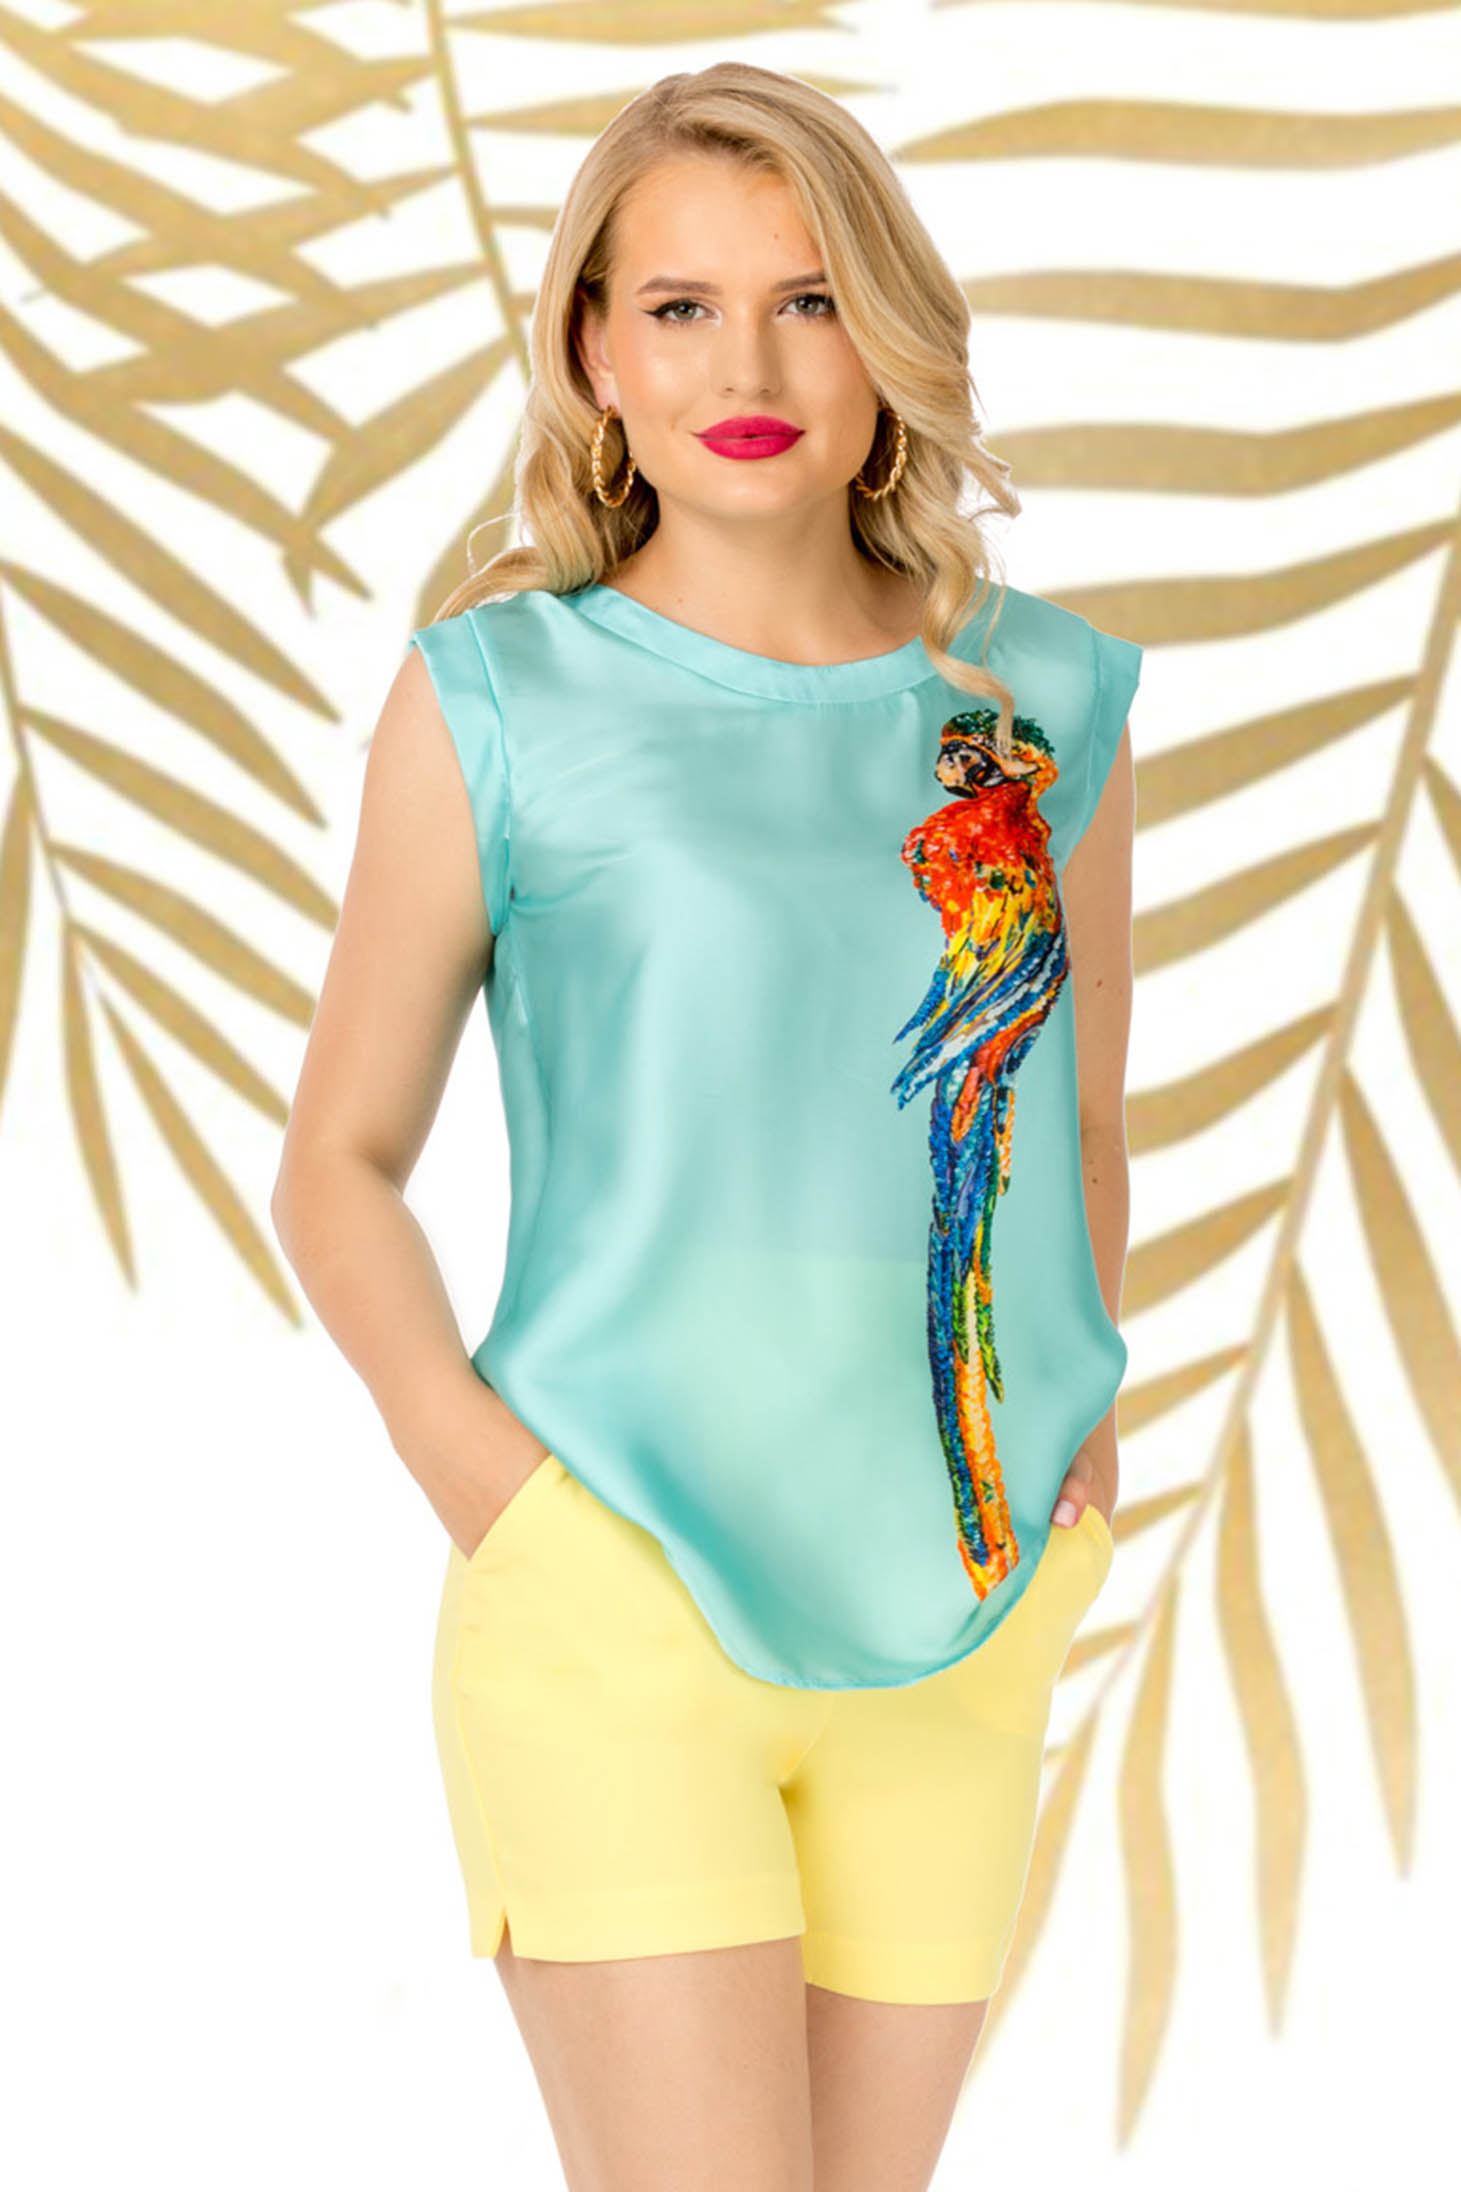 Turquoise top shirt casual flared thin fabric with graphic details